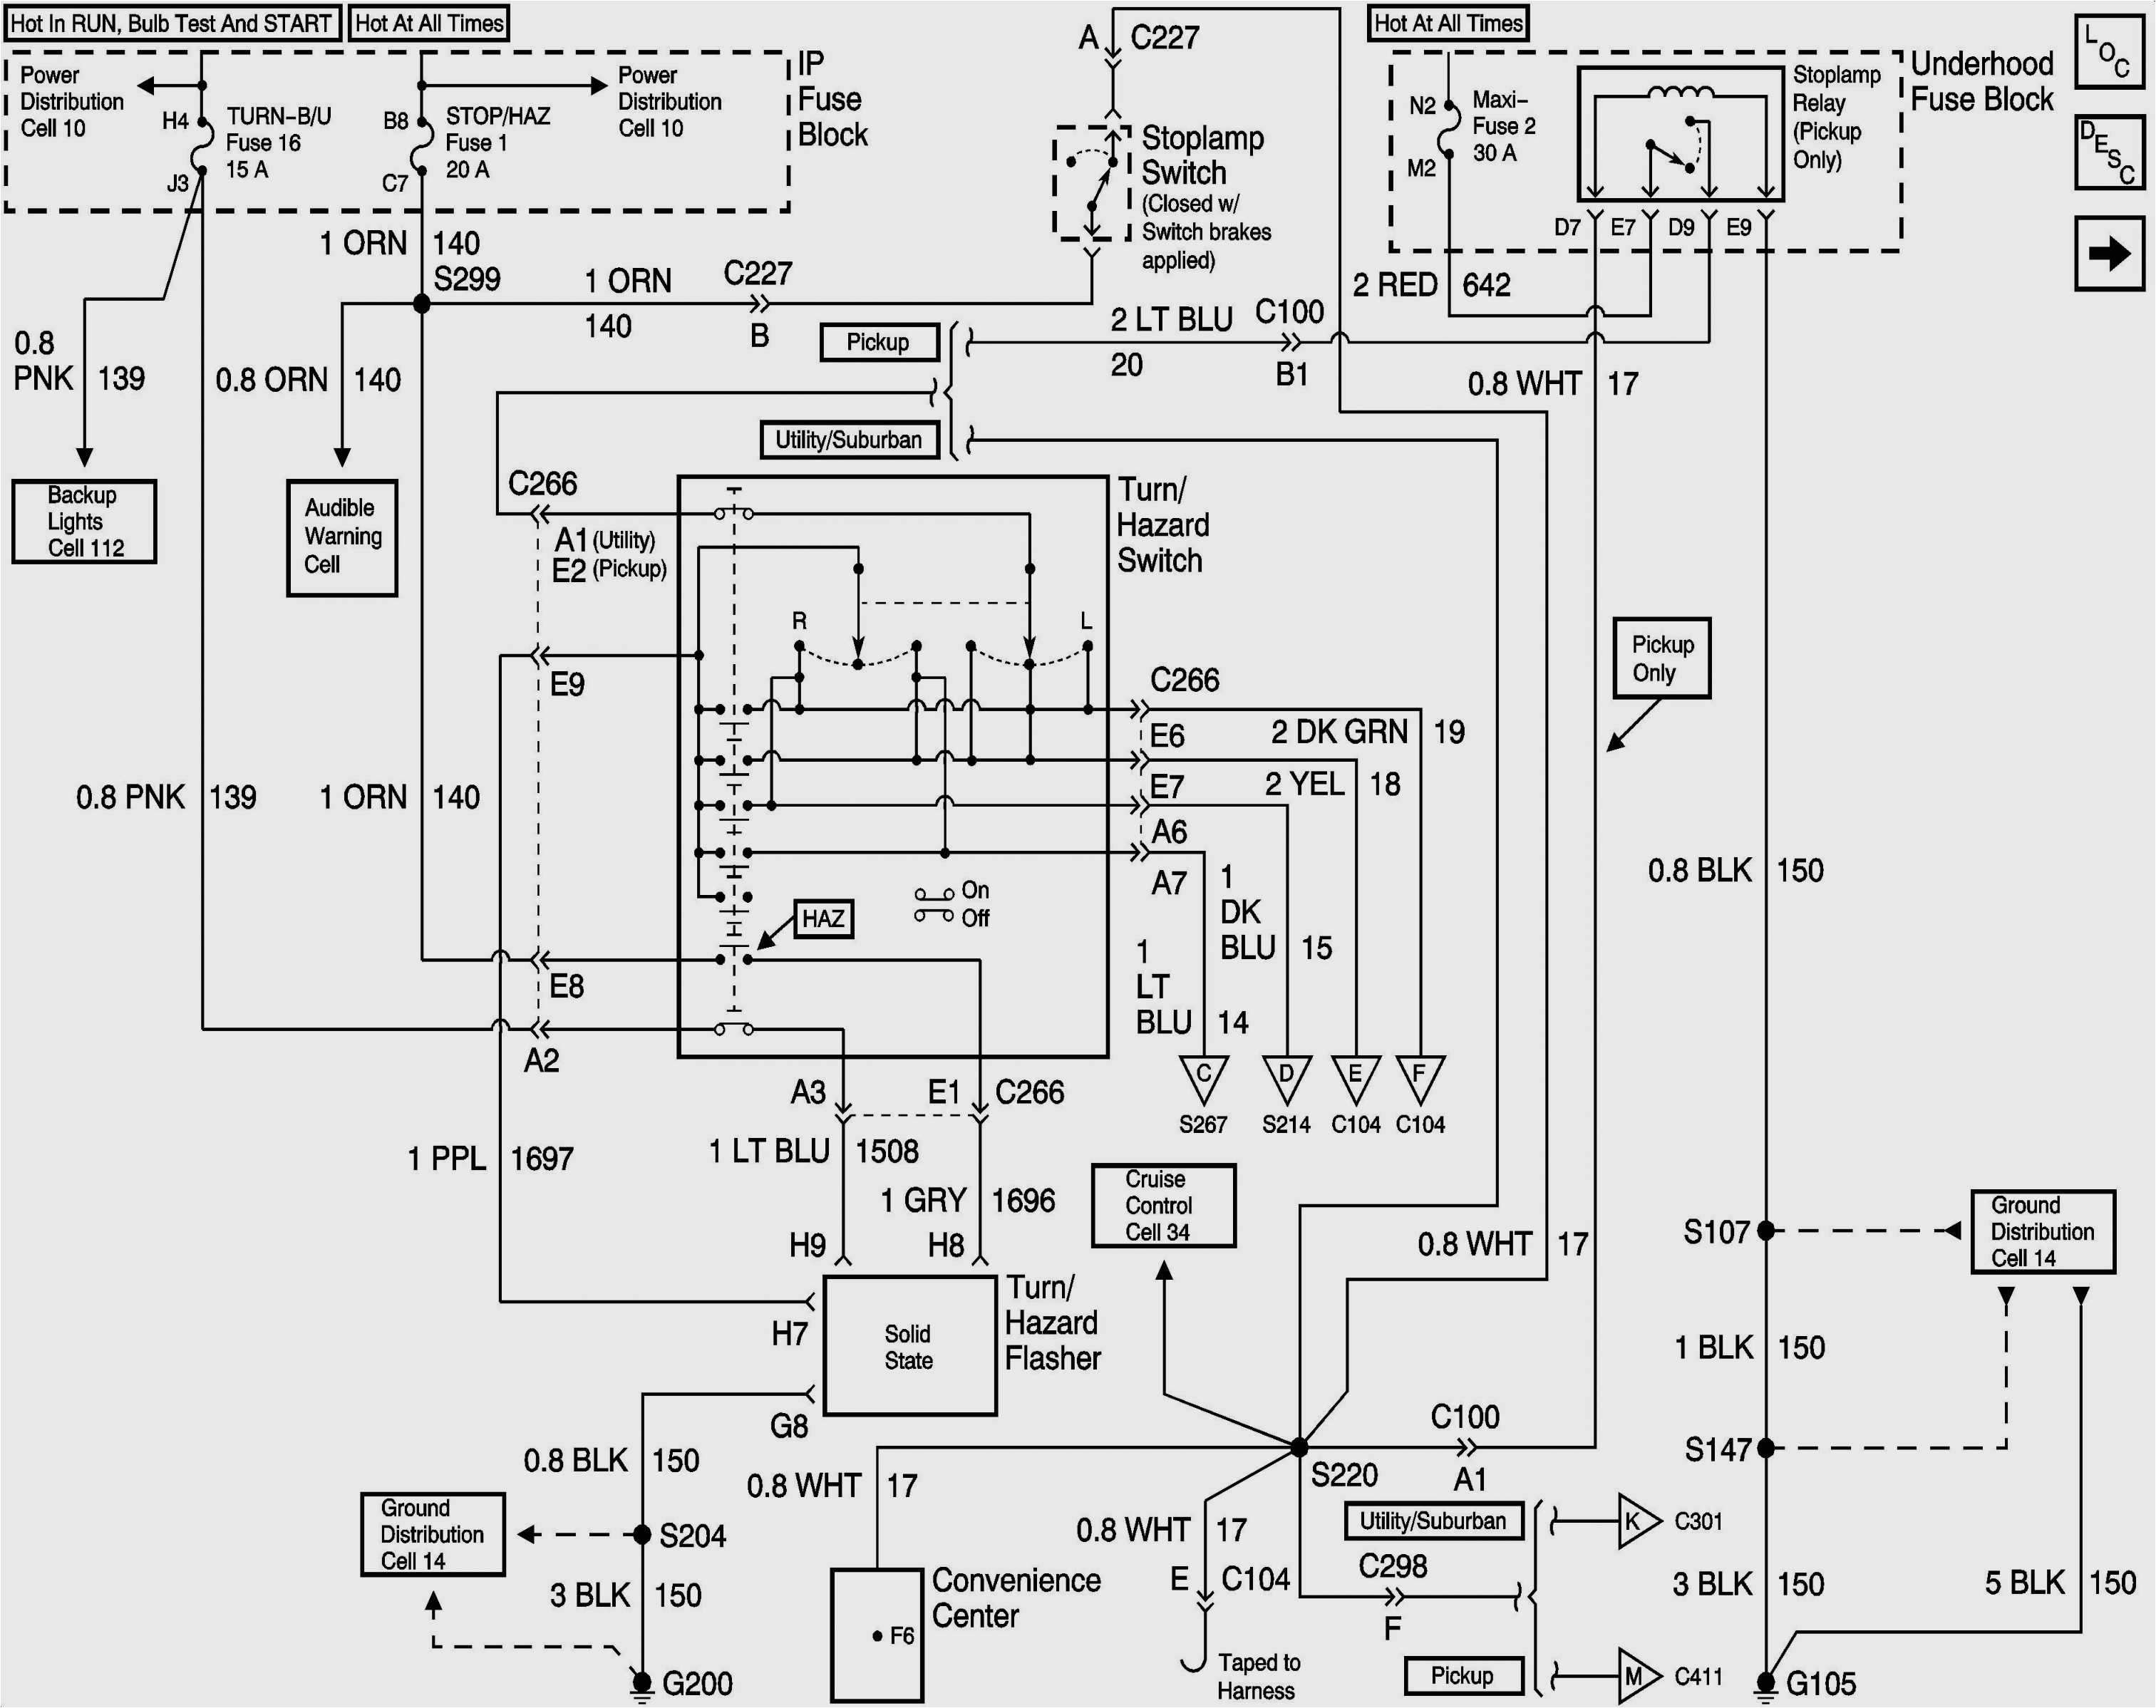 2002 Mazda Protege Radio Wiring Diagram 2001 Mazda Tribute Wiring Diagram Wiring Diagrams